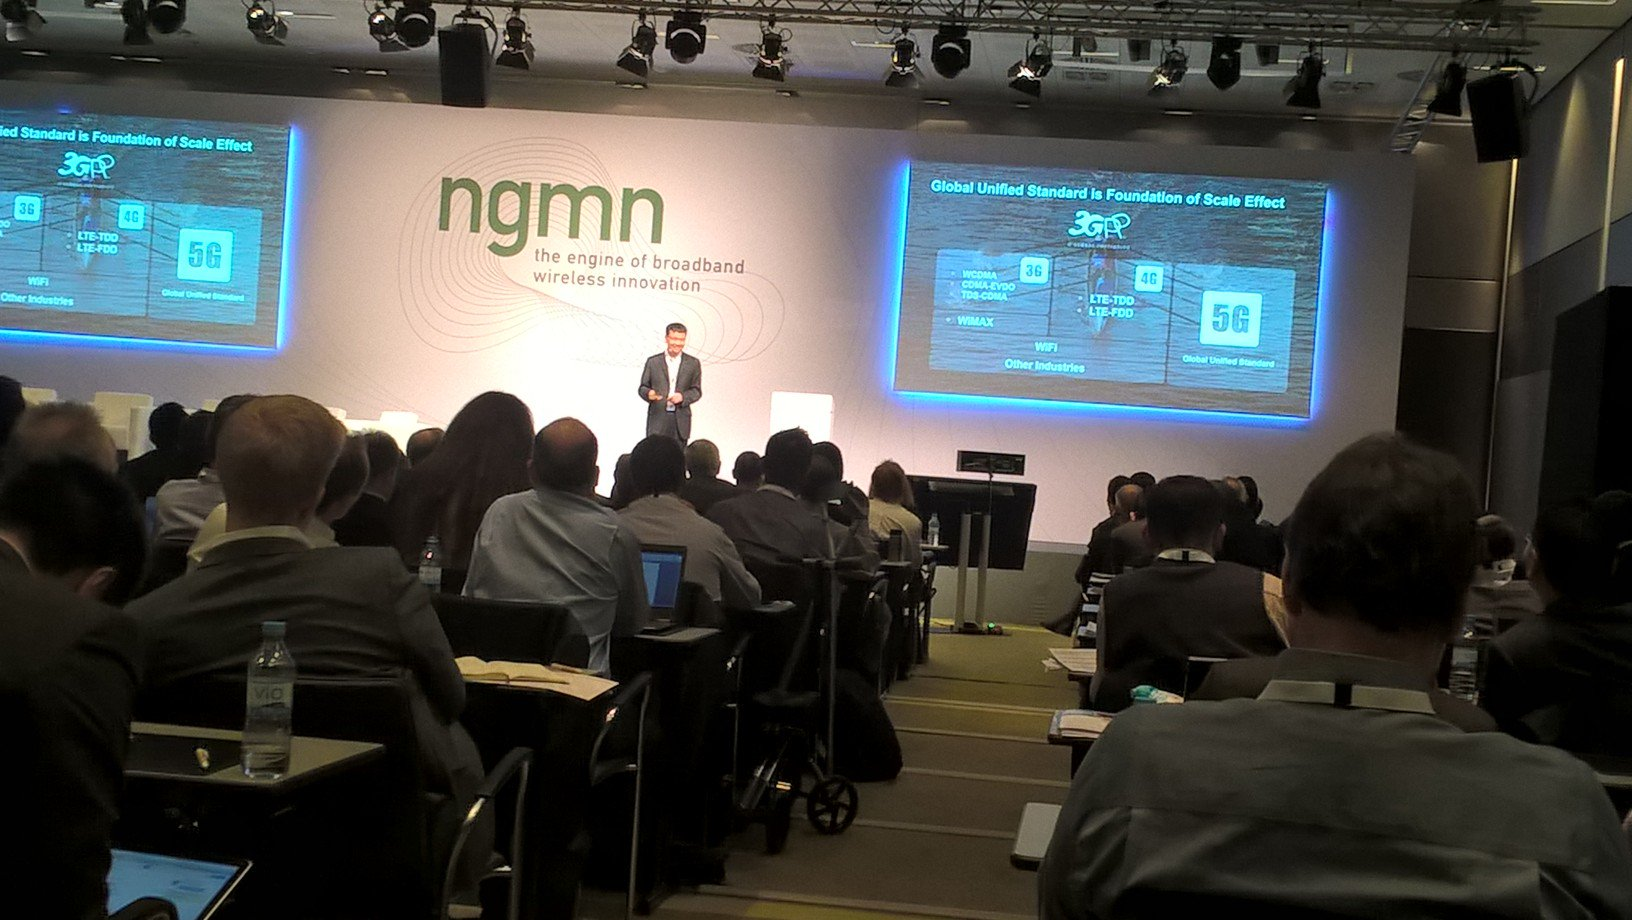 Yang Chaobin, Huawei, calls for a Global Unified Standard for 5G - from 3GPP - at #NGMN_ICE2016 https://t.co/oCeakoqPVy